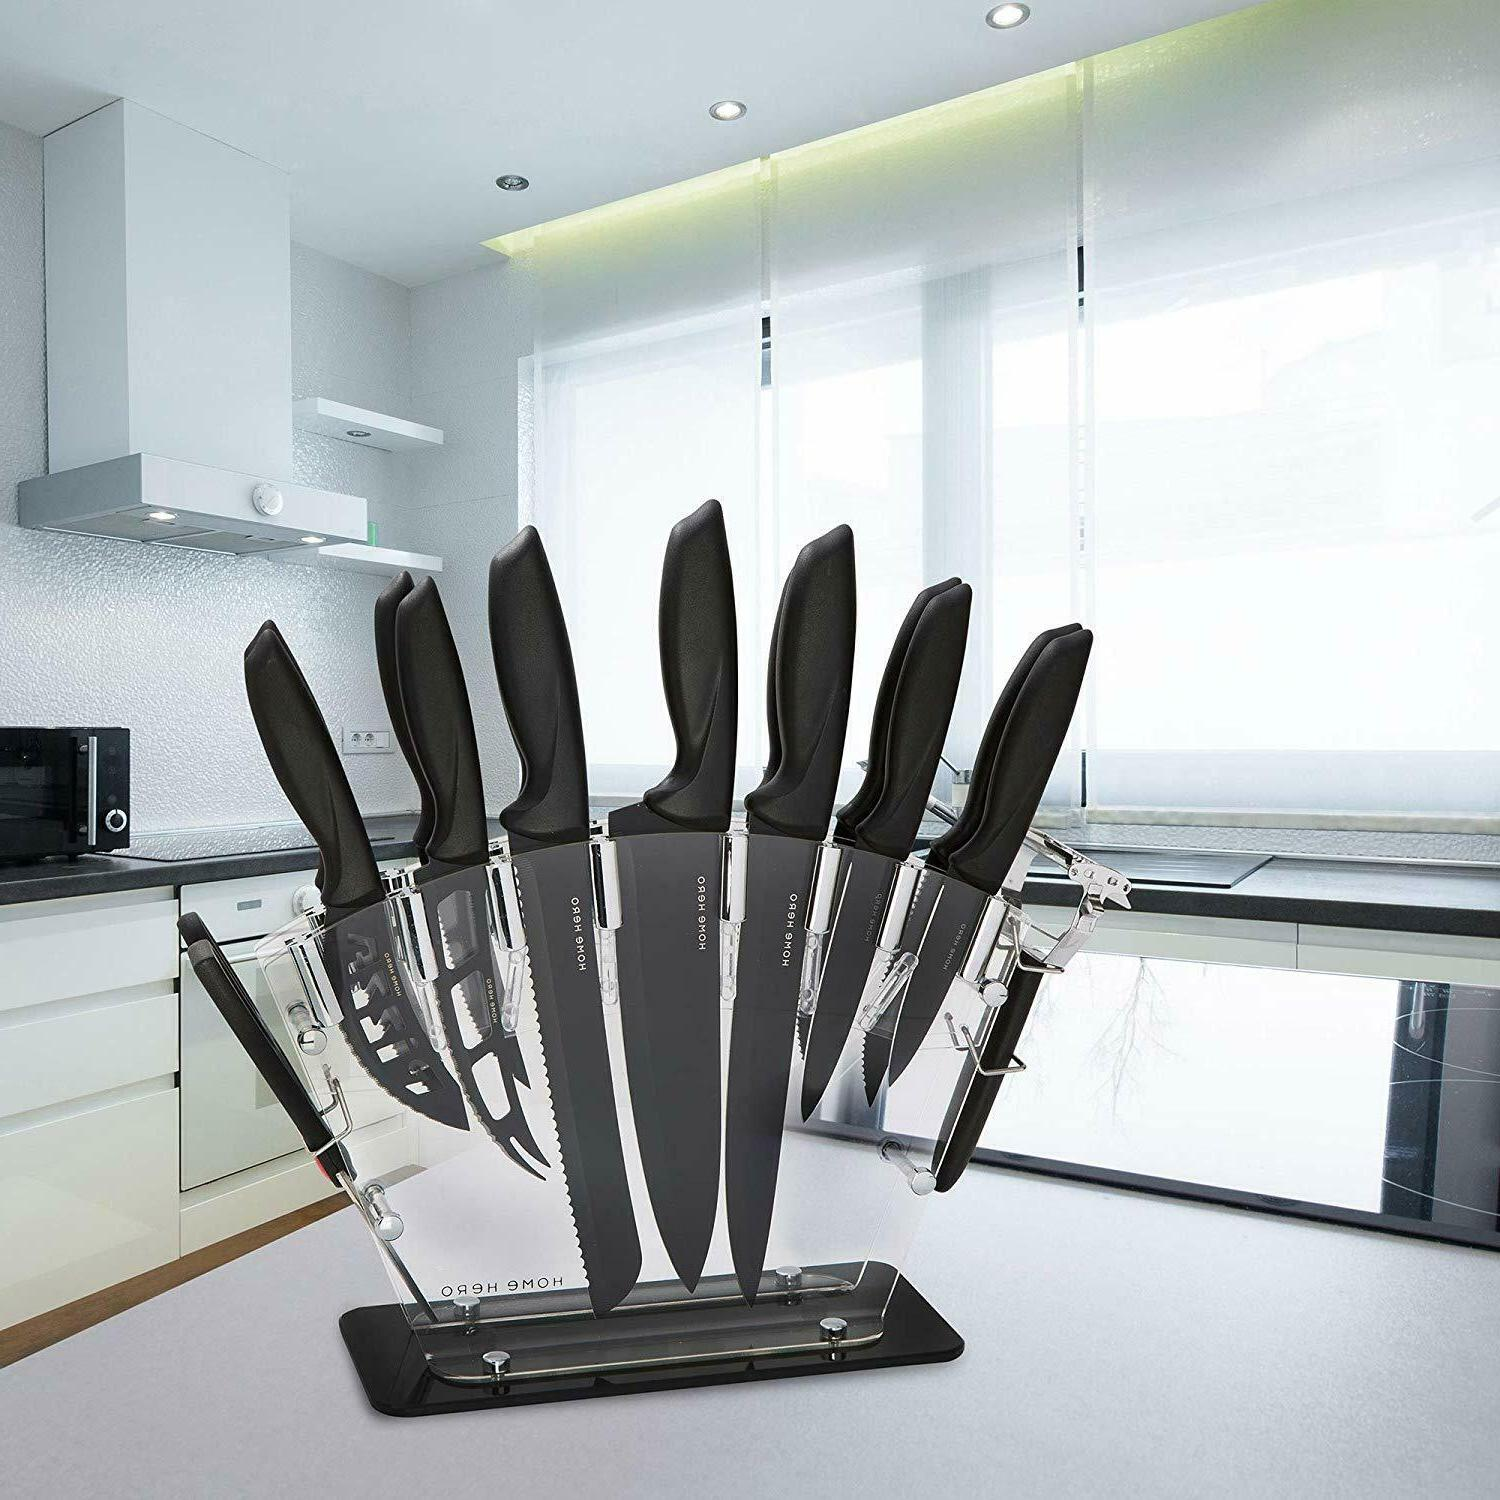 Kitchen Knife Block-13 Stainless Knives Set